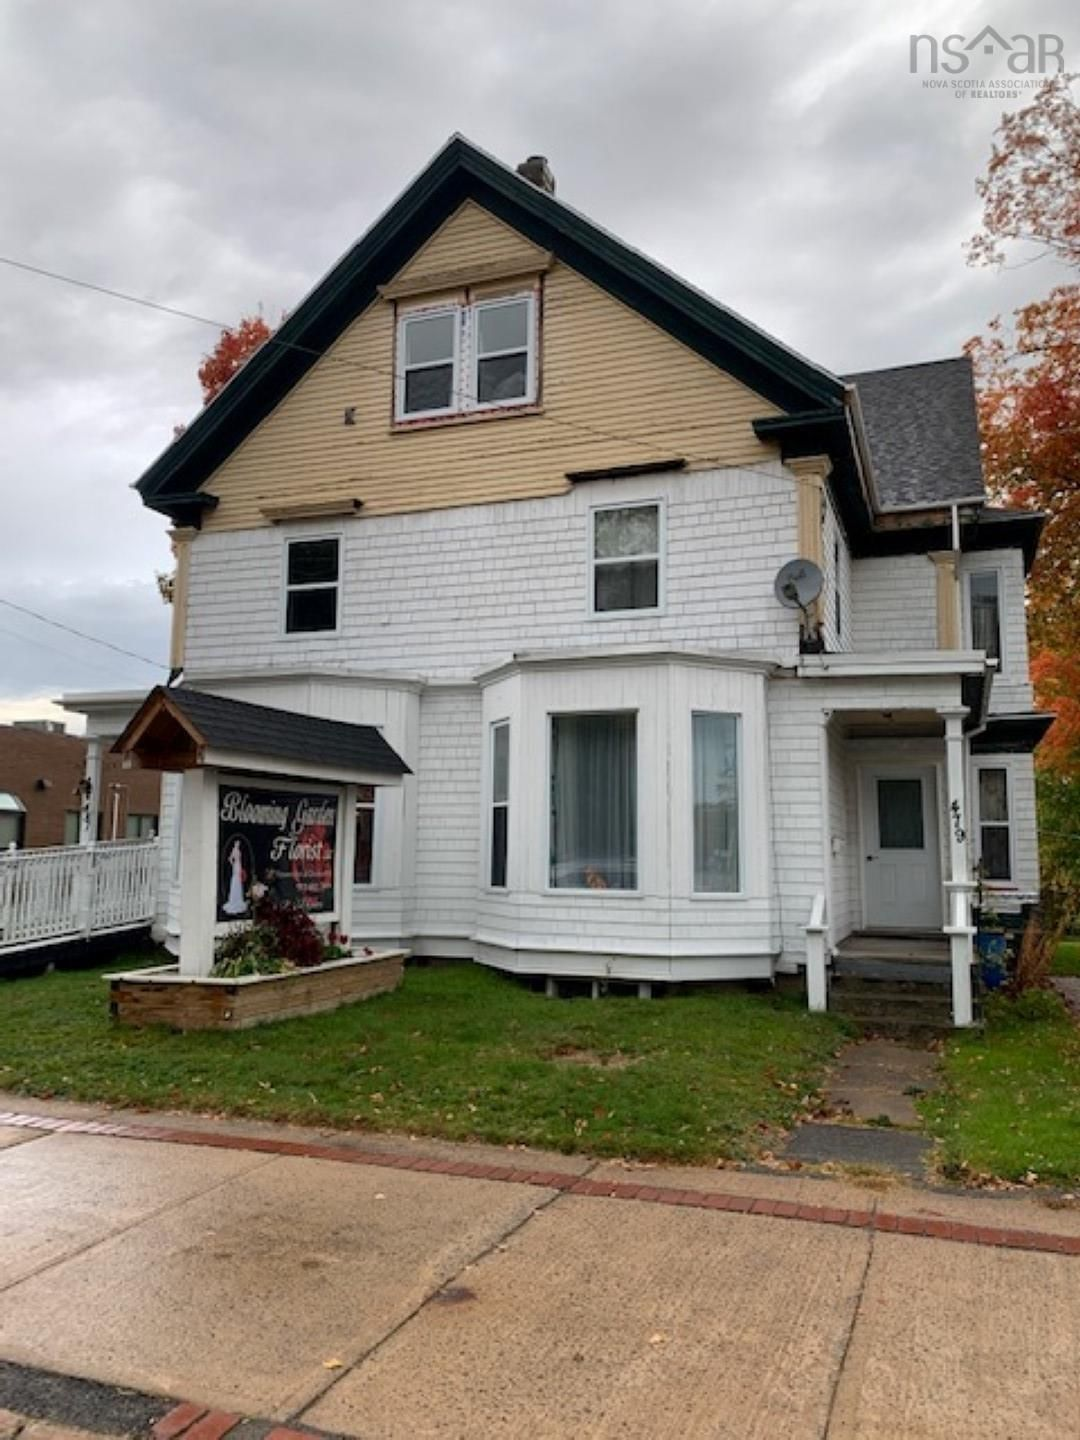 Main Photo: 481 Main Street in Kentville: 404-Kings County Residential for sale (Annapolis Valley)  : MLS®# 202125881